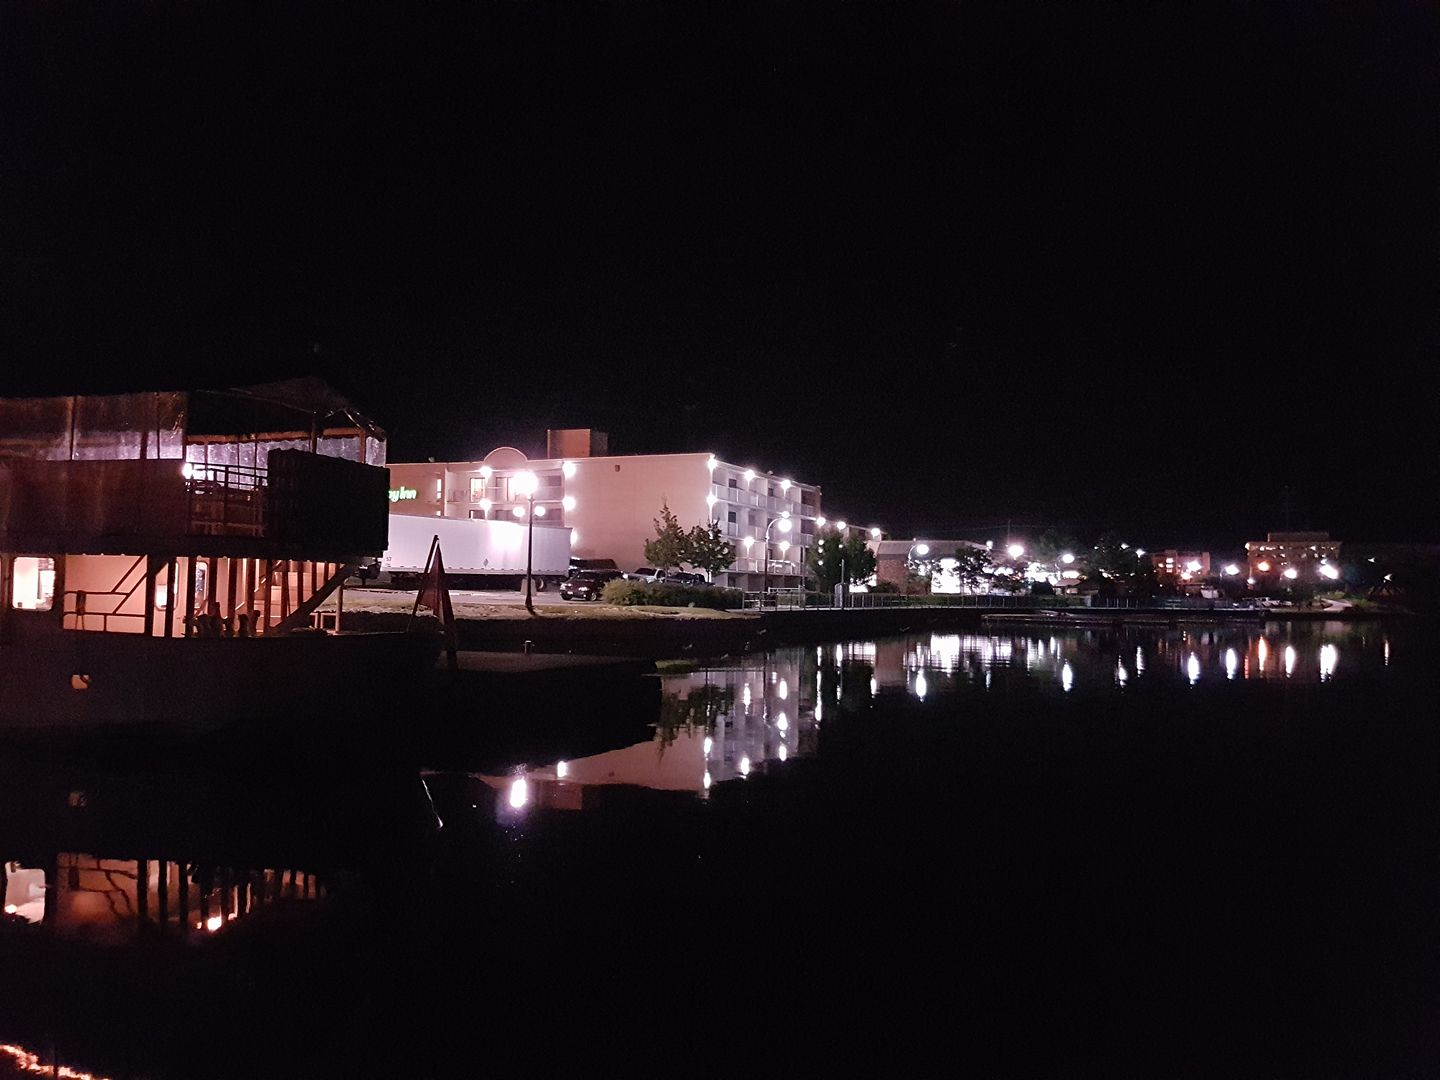 Photo by Brenda Mac. This photo was taken while sitting on the upper deck of our houseboat at the Peterborough Marina, and enjoying the beautiful sight of Peterborough's waterfront at night!